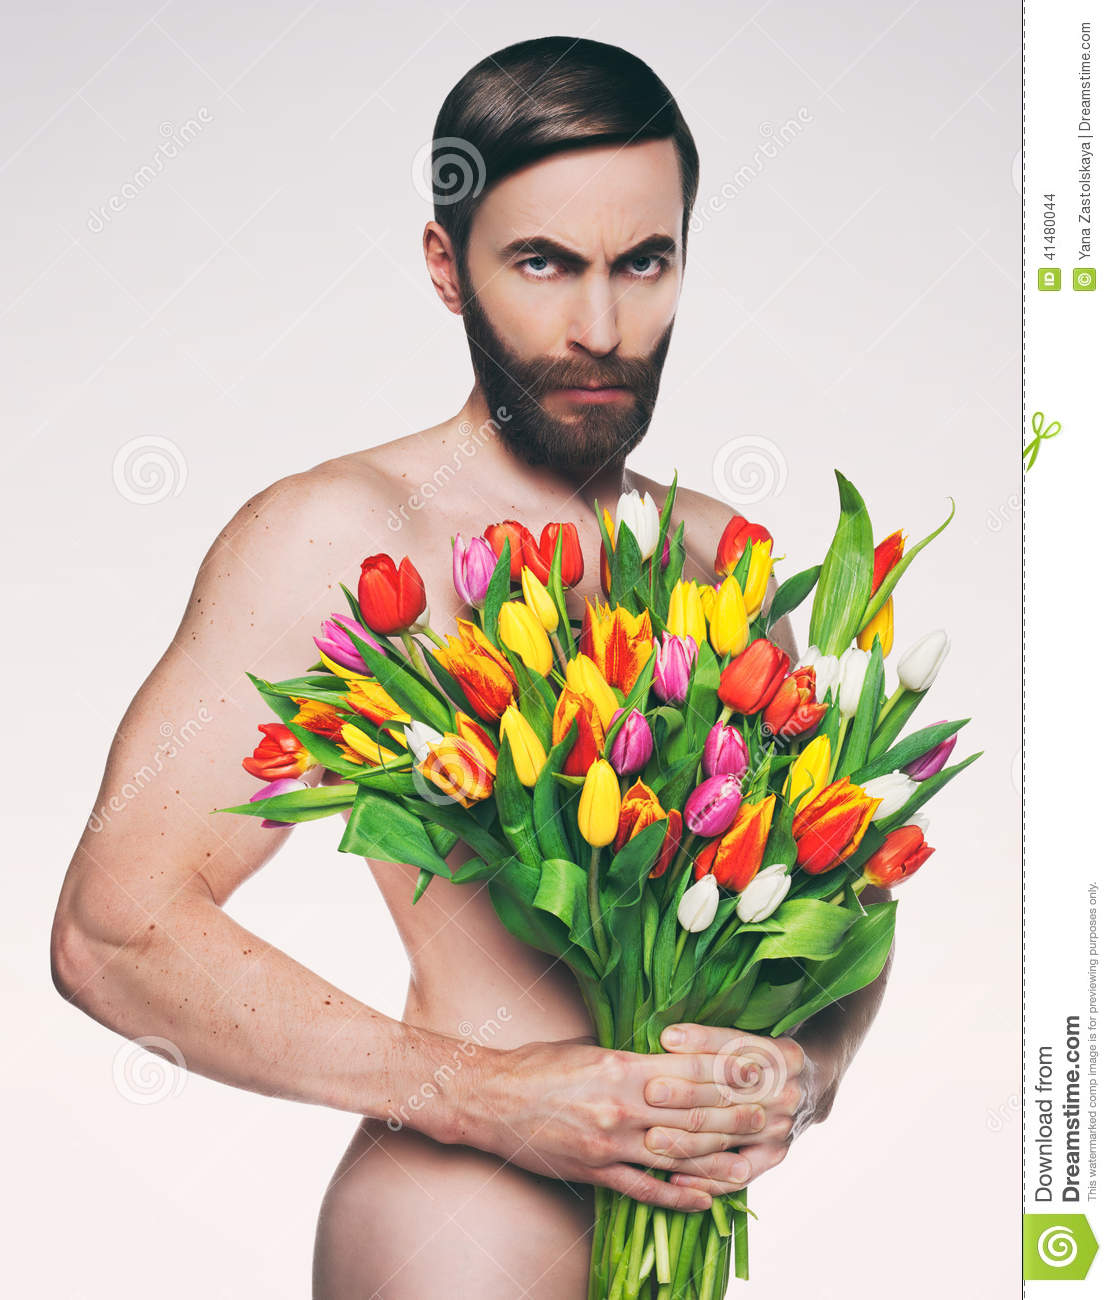 Men Portrait With A Bouquet Of Flowers. Stock Photo - Image of ...